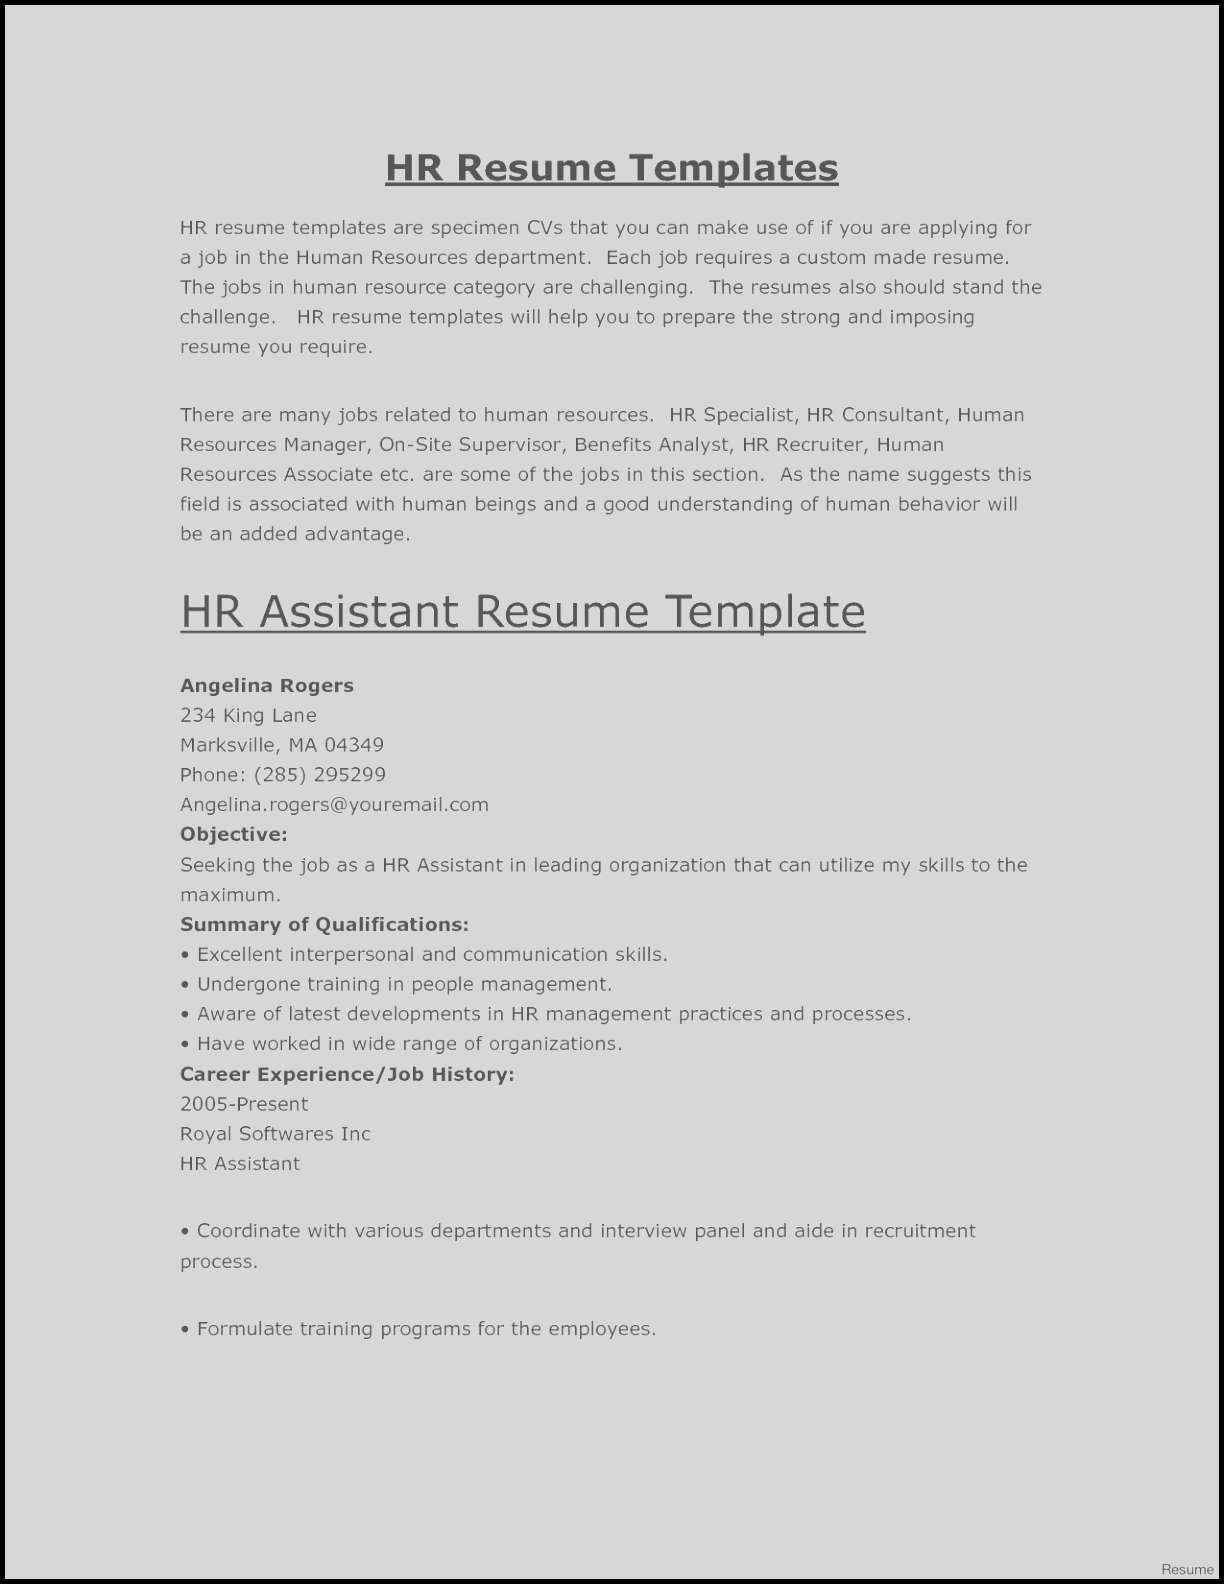 Project Management Resume - Skills Used for Resume Cto Resume Project Management Resume